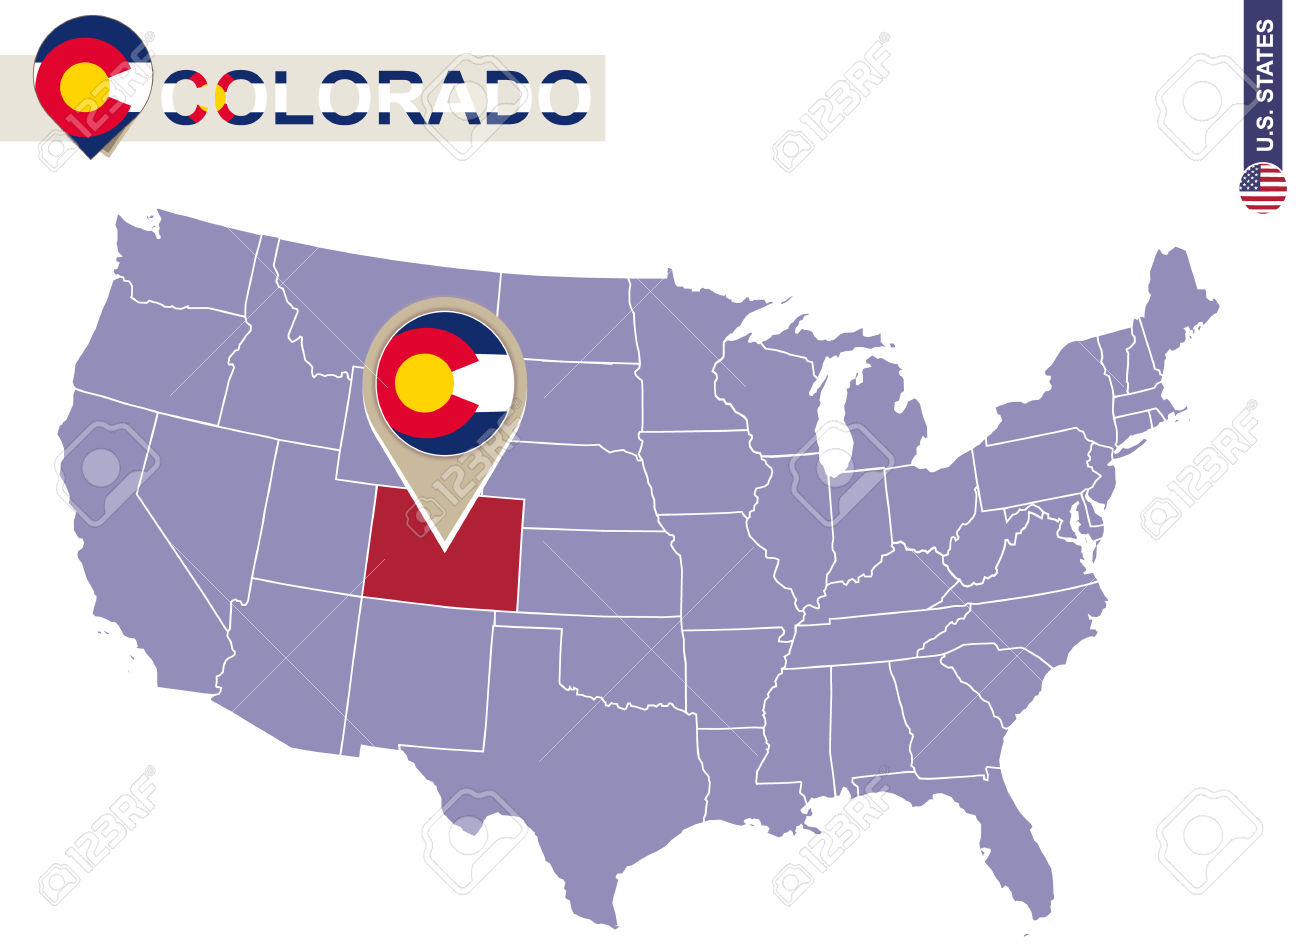 Free us map clipart vector royalty free stock 1,219 Colorado State Map Stock Vector Illustration And Royalty ... vector royalty free stock